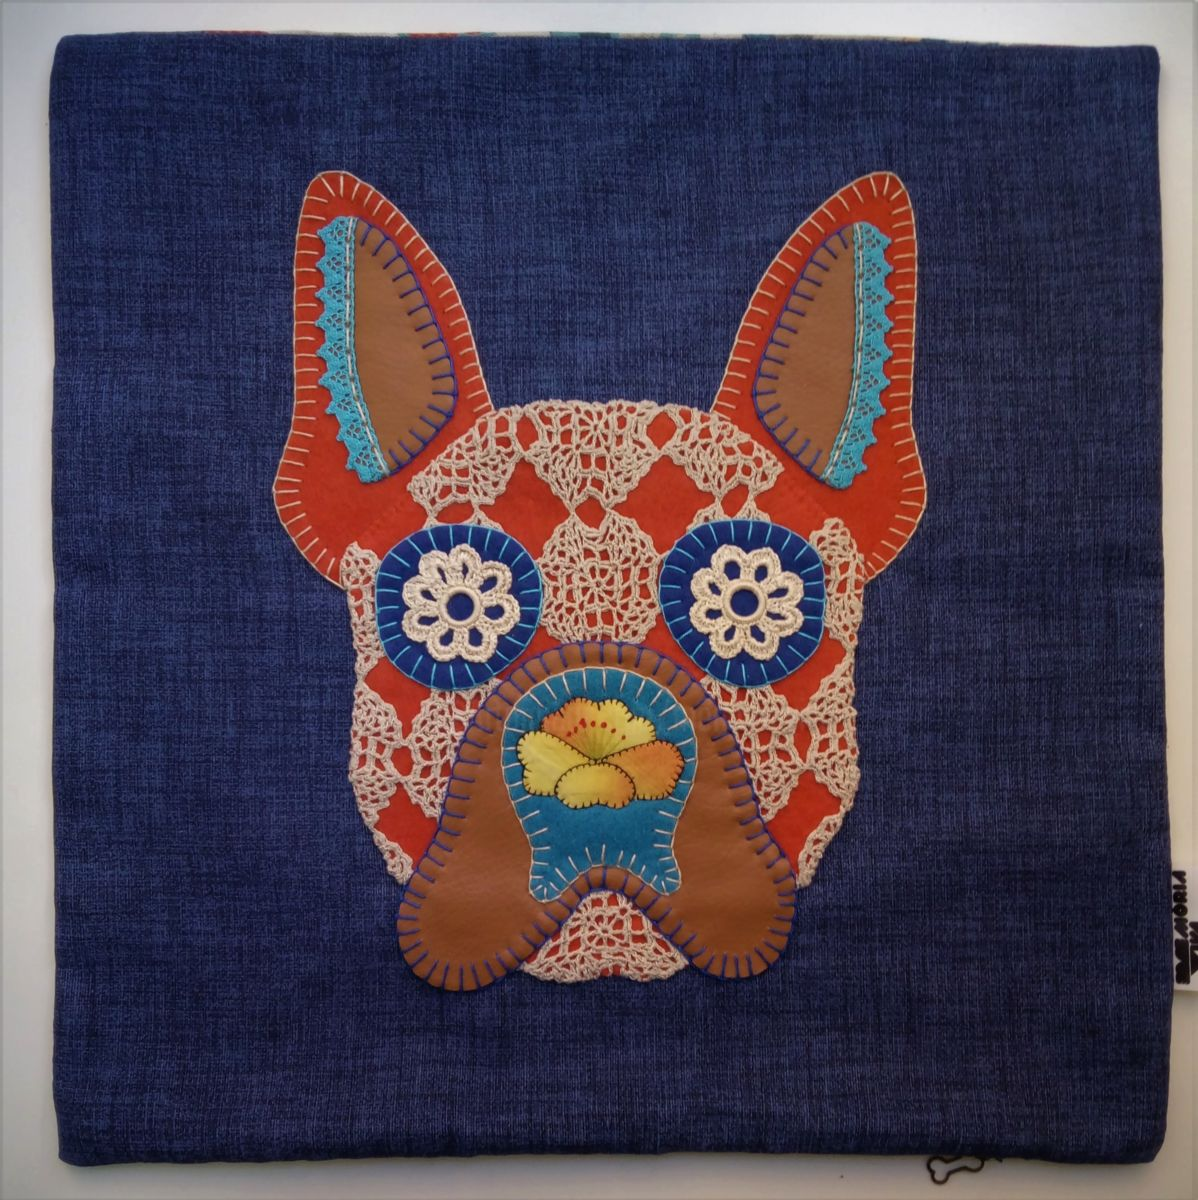 Unique Handstiched French Bulldog Pillow Case - Mixed Media ©2018 by Memória Viva -